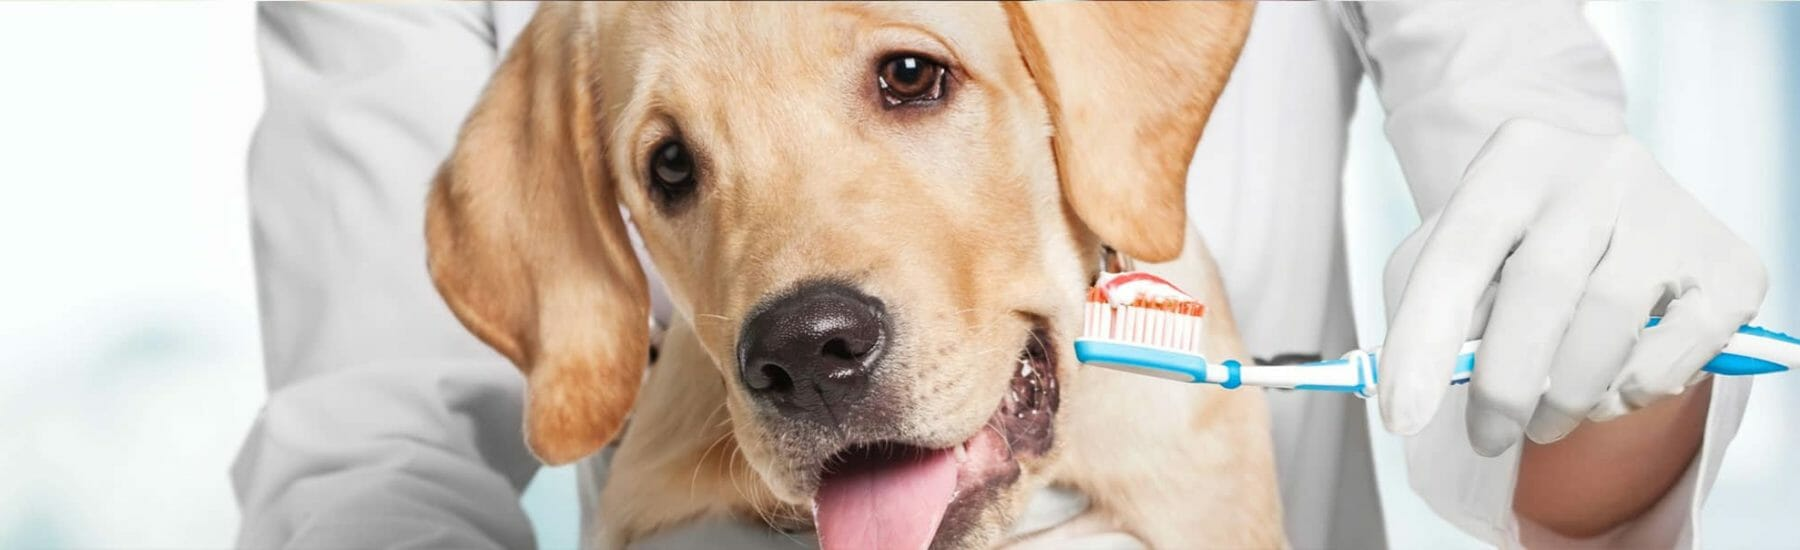 Golden dog getting their teeth brushed